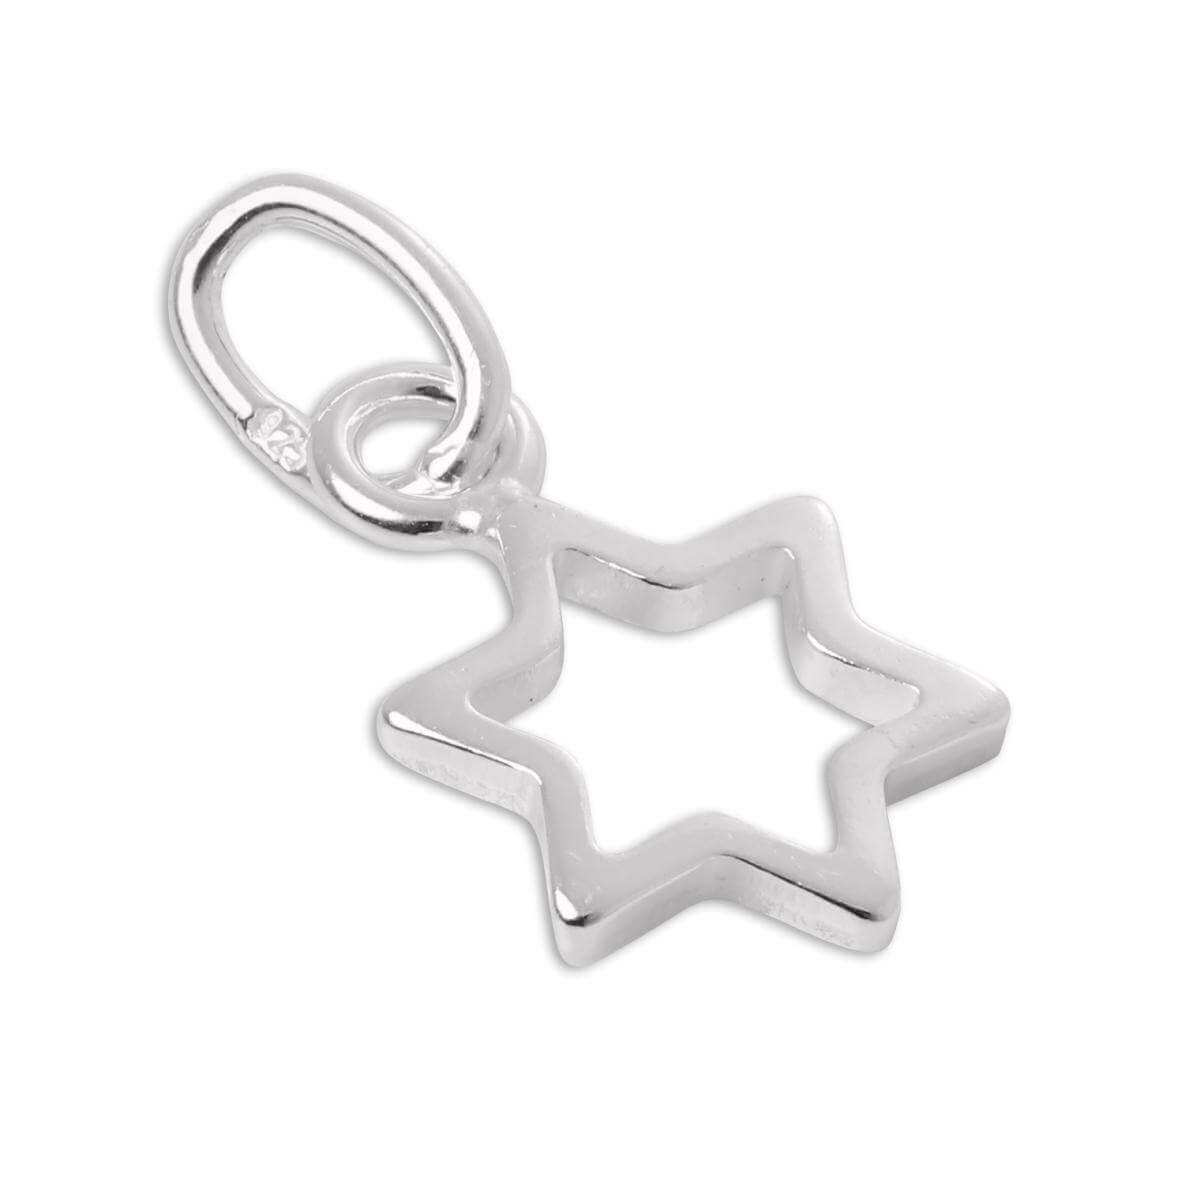 Tiny Sterling Silver Outline Star Charm